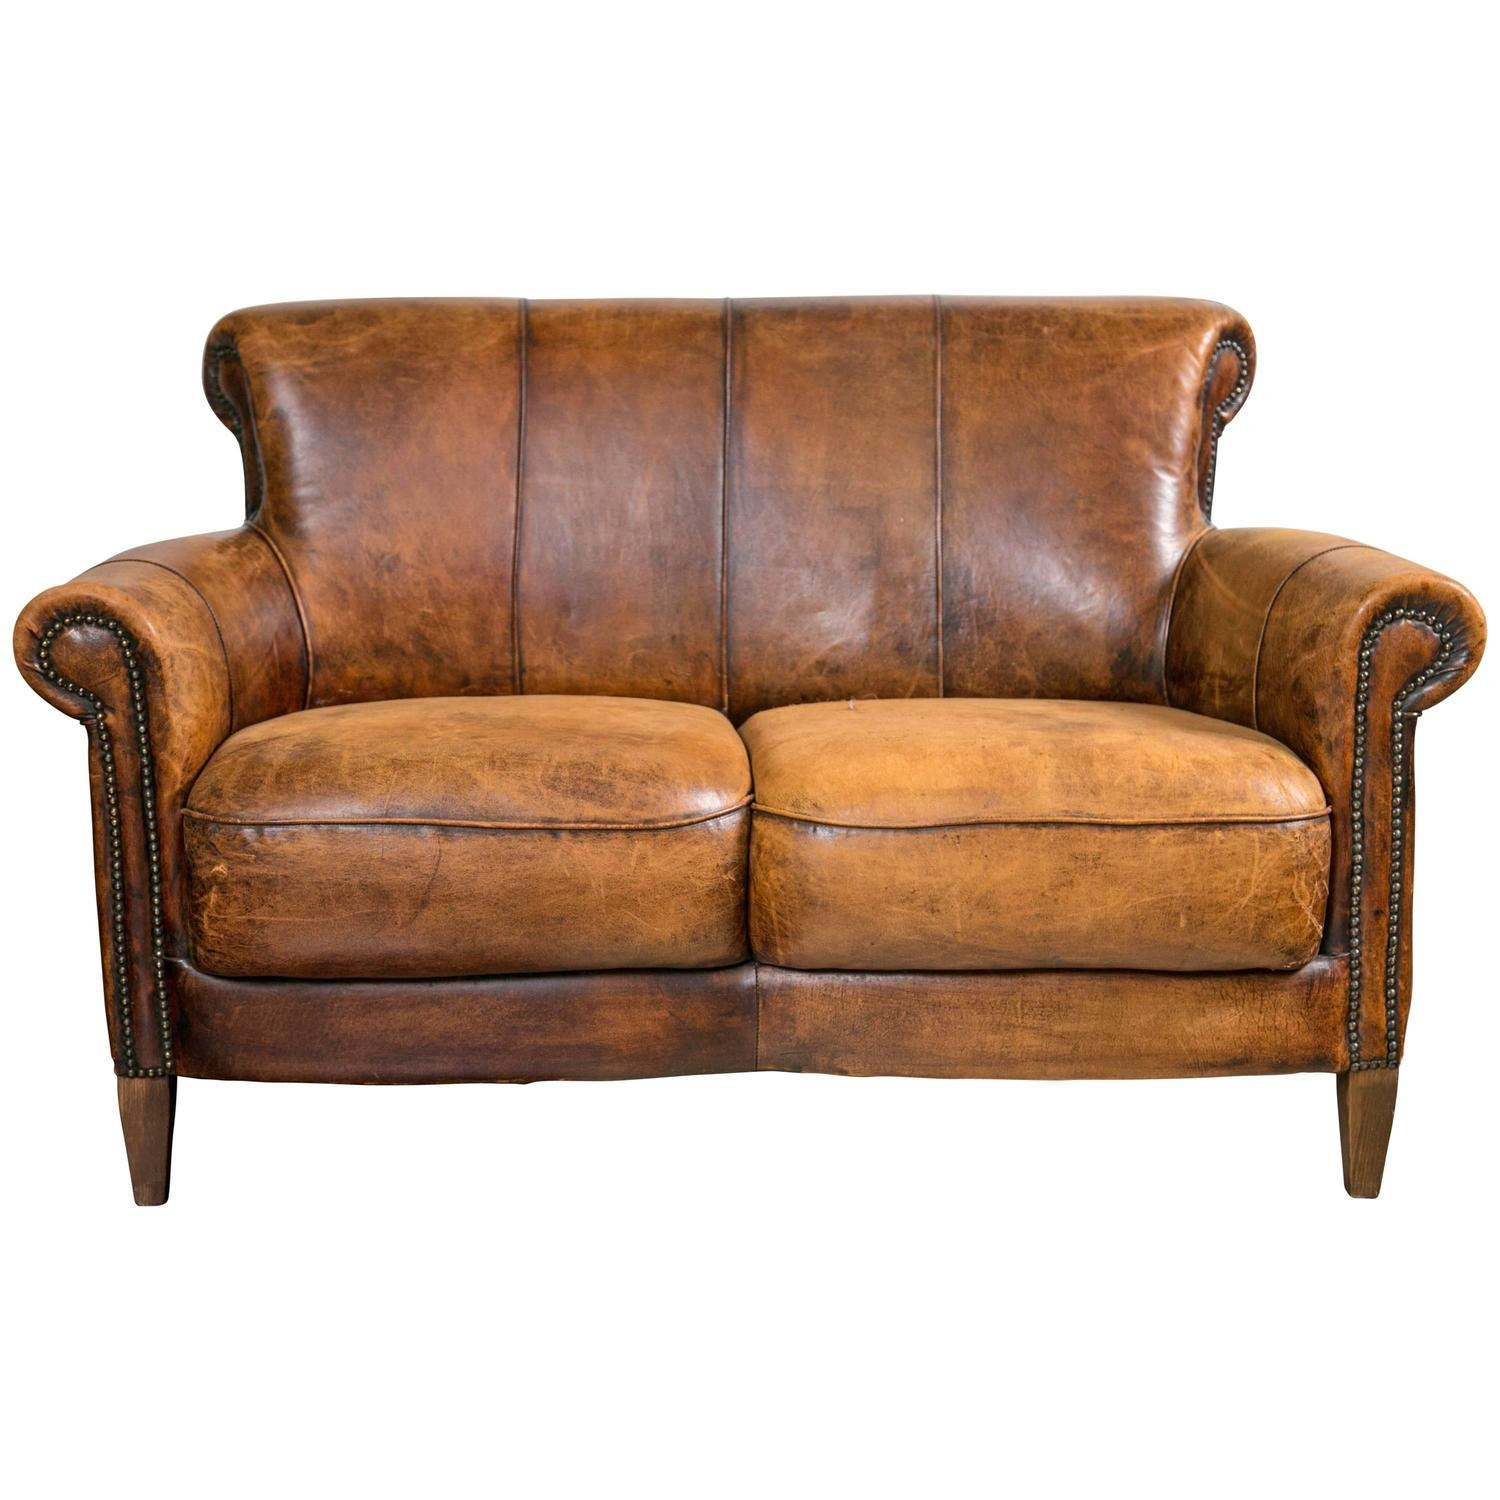 Impressive Distressed Leather Sofa Excellent Distressed Leather Within Awesome Sofa (View 13 of 20)